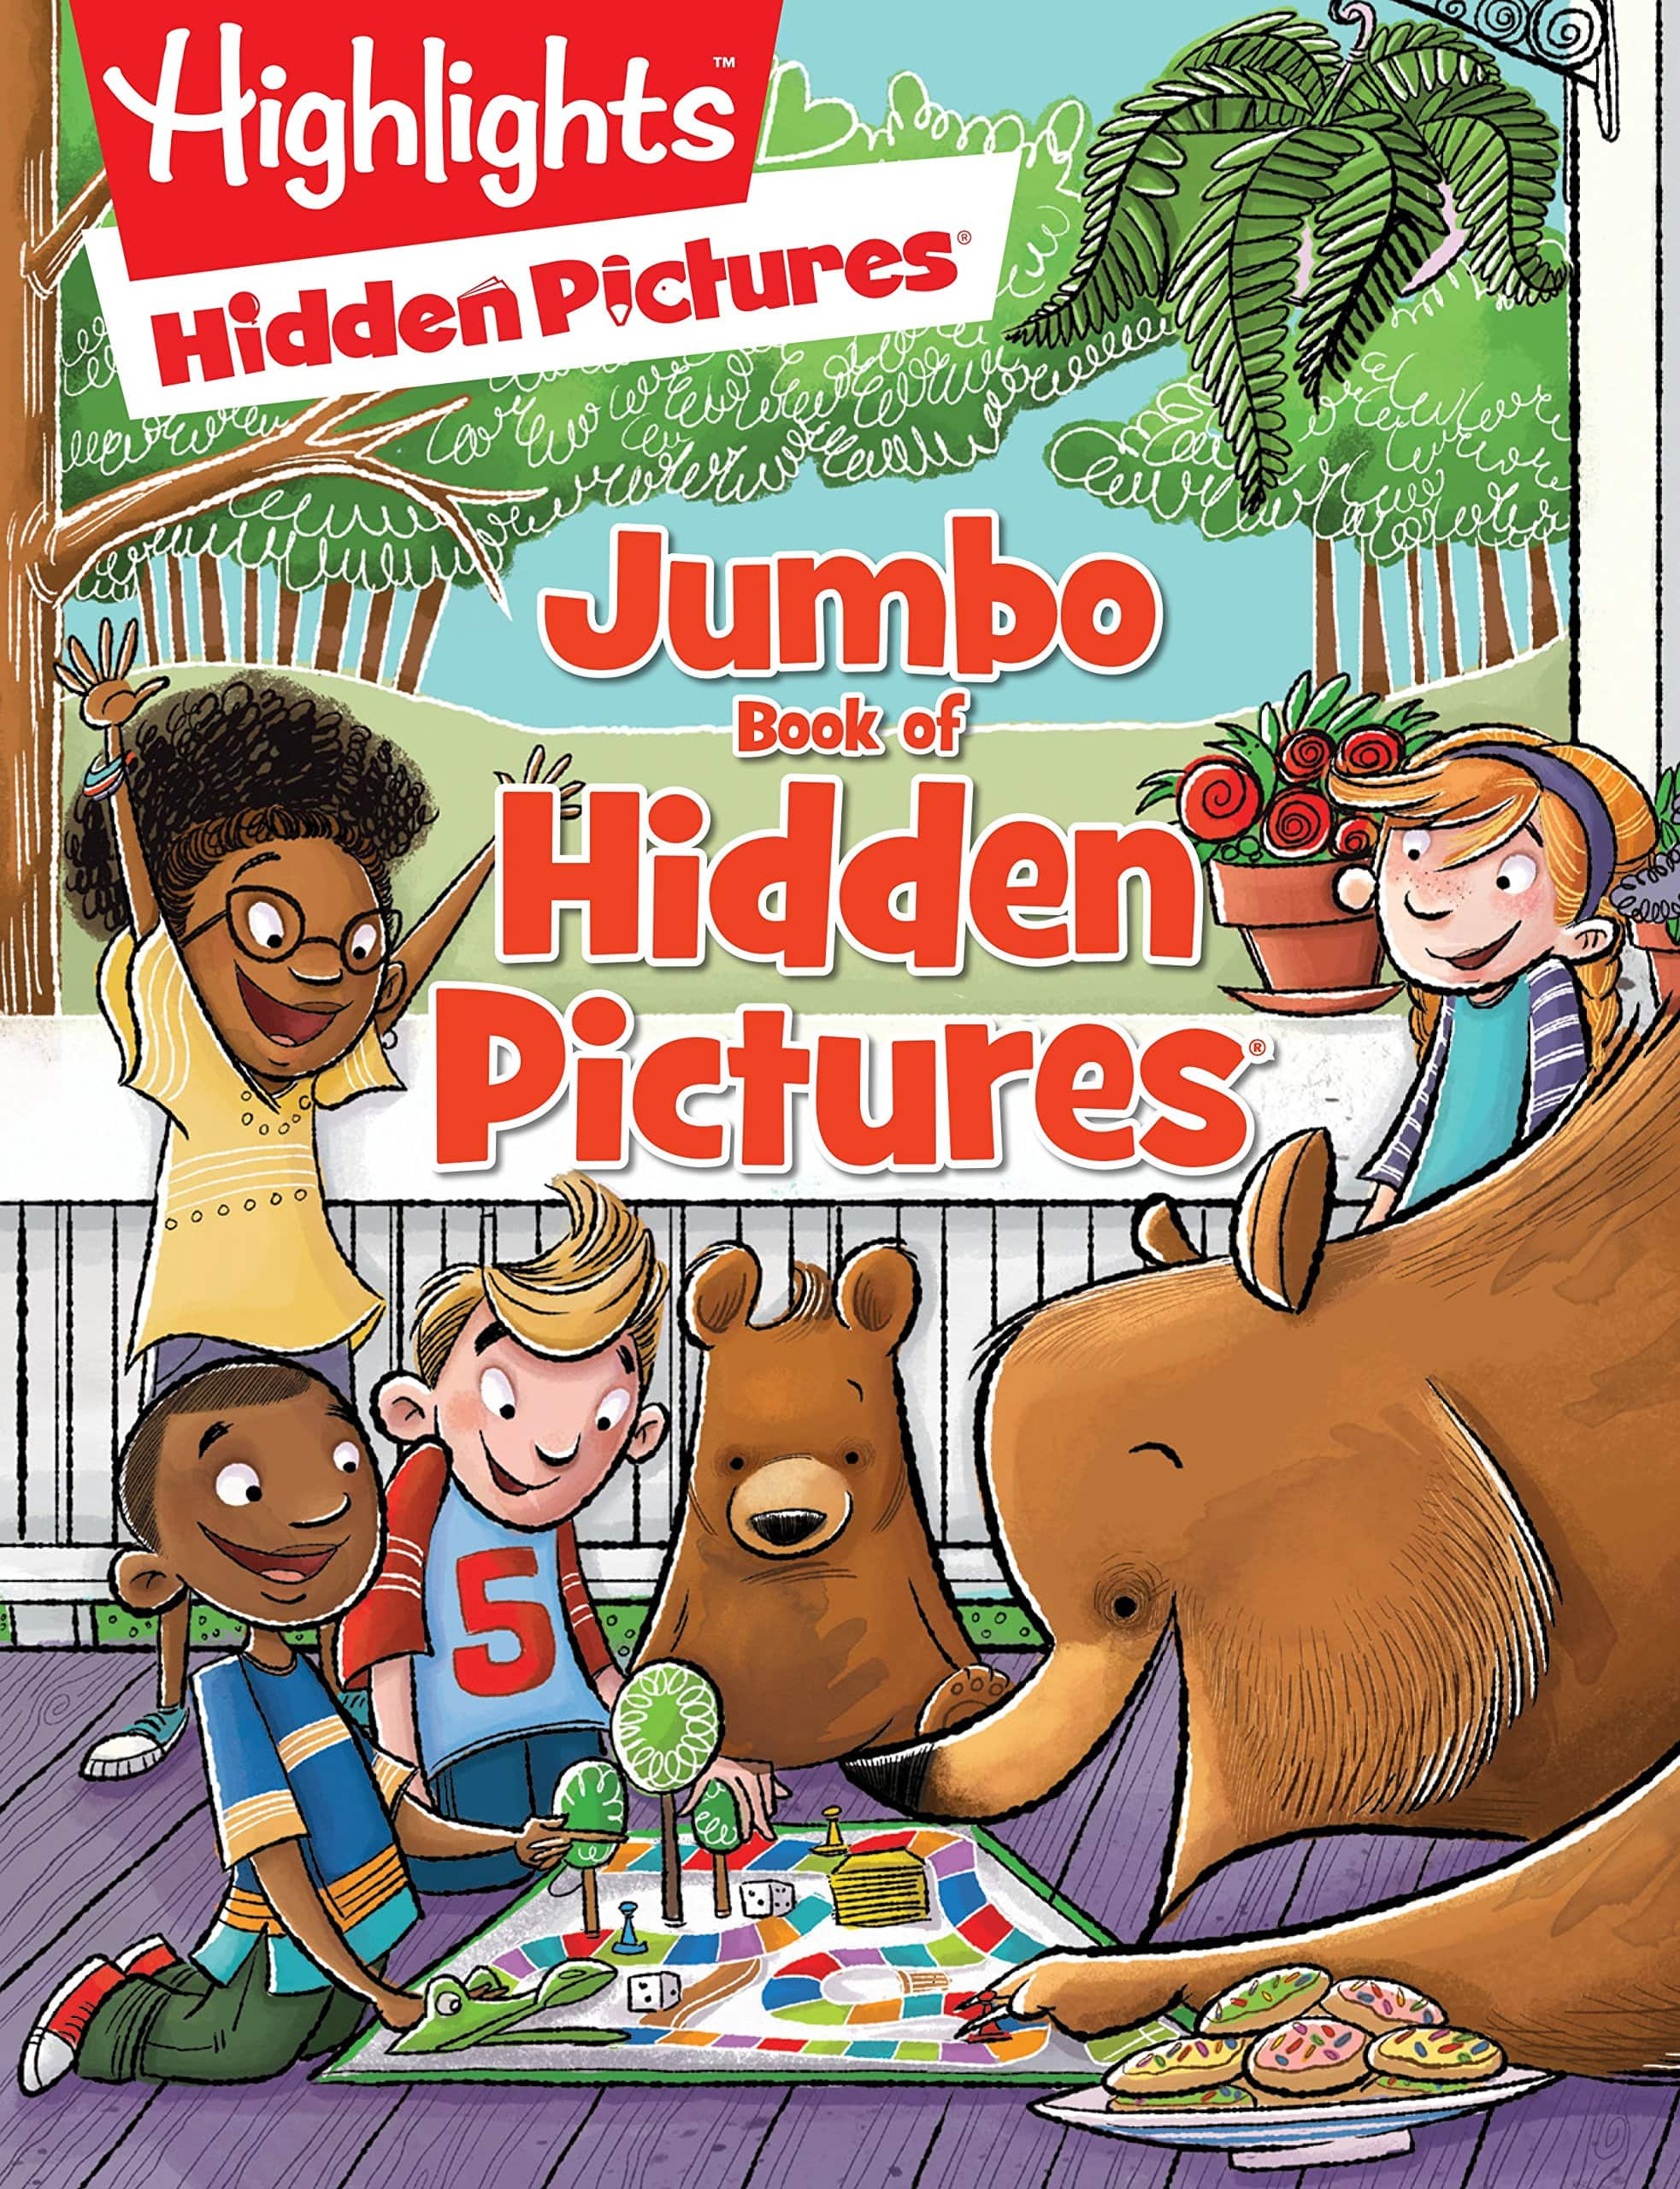 Highlights Hidden Pictures: The Jumbo Book of Hidden Pictures